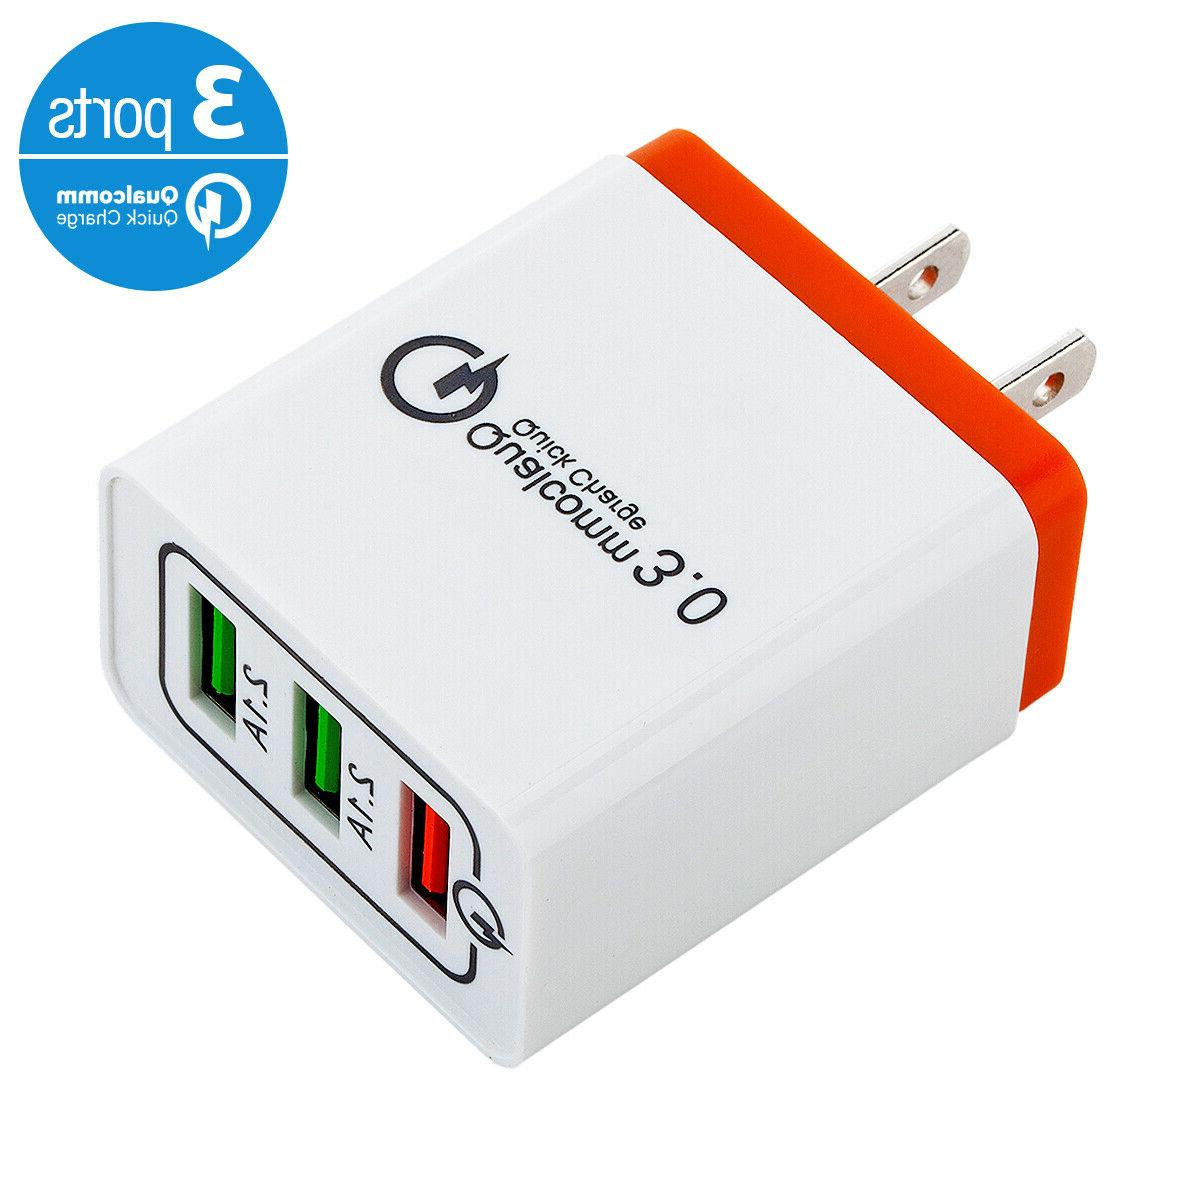 USB Quick Hub Wall Adapter For iPhone Android